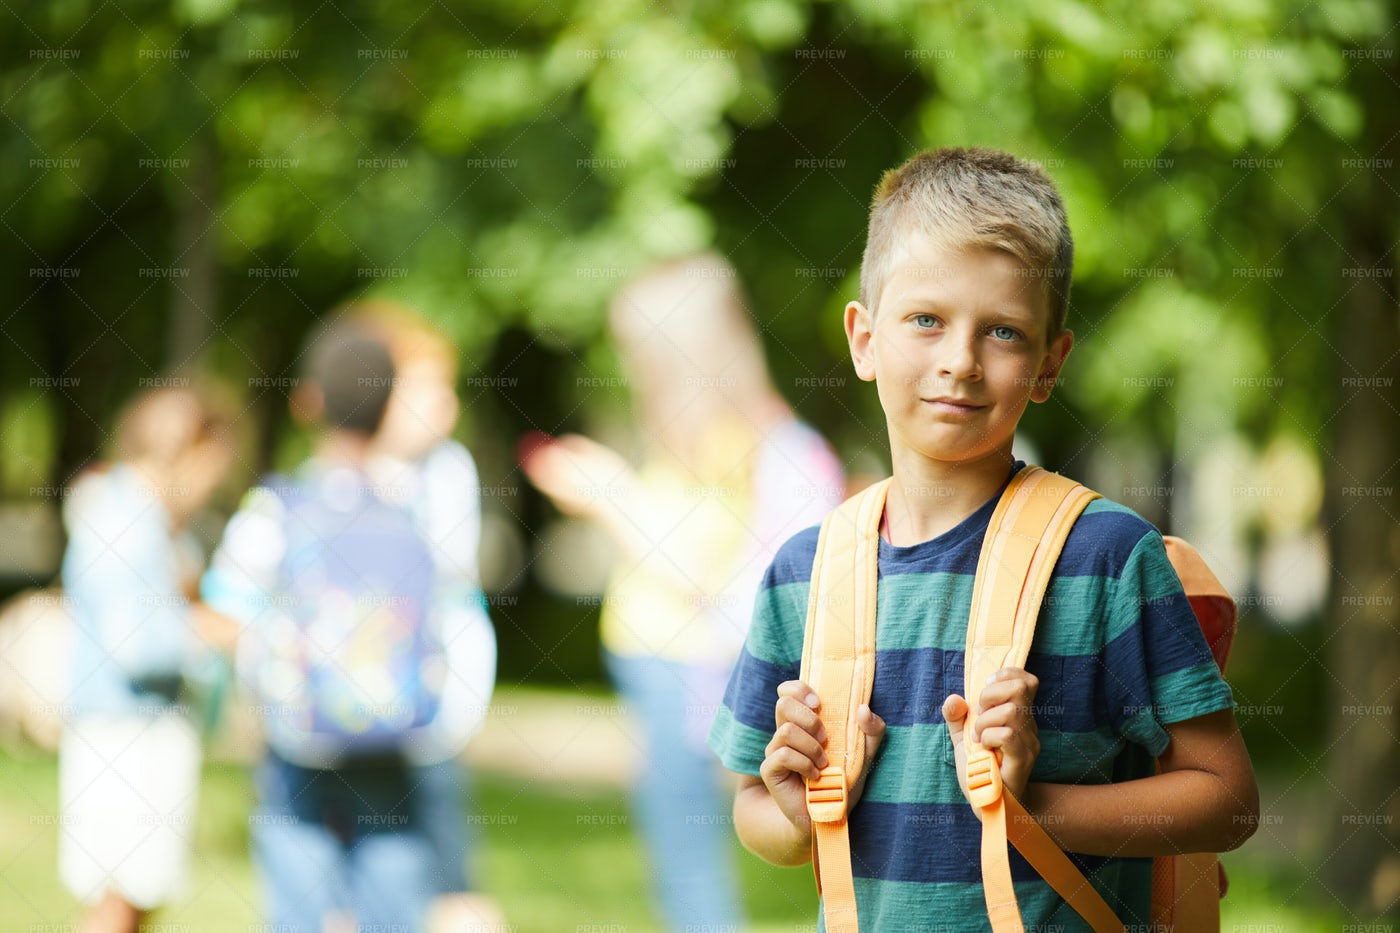 Schoolboy With Orange Backpack: Stock Photos